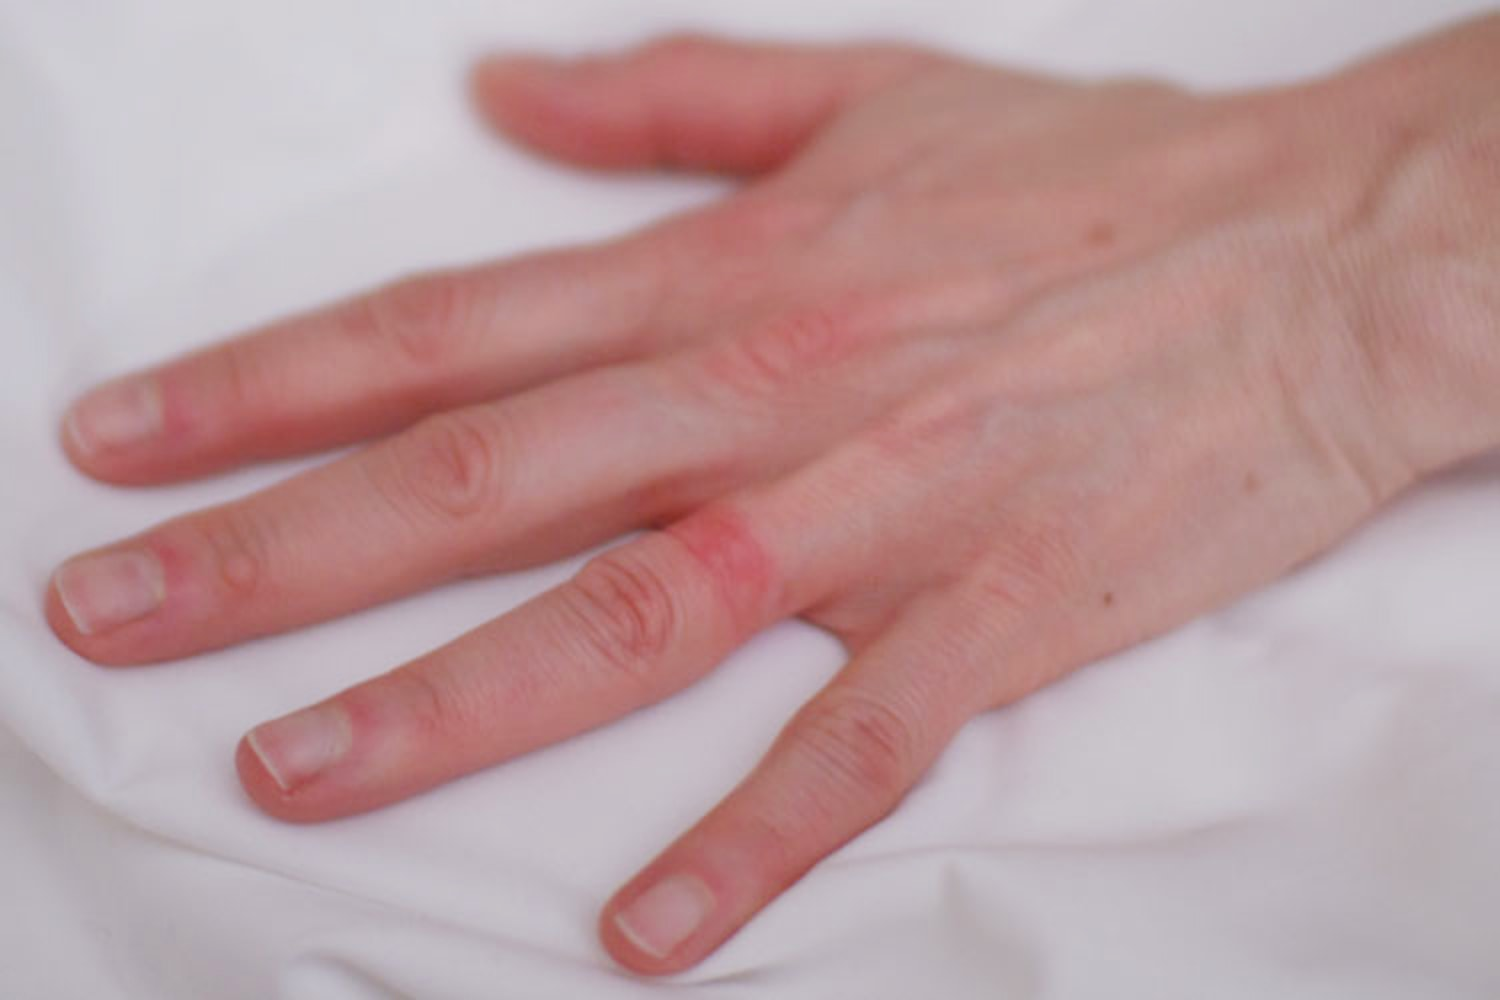 wedding ring dermatitis